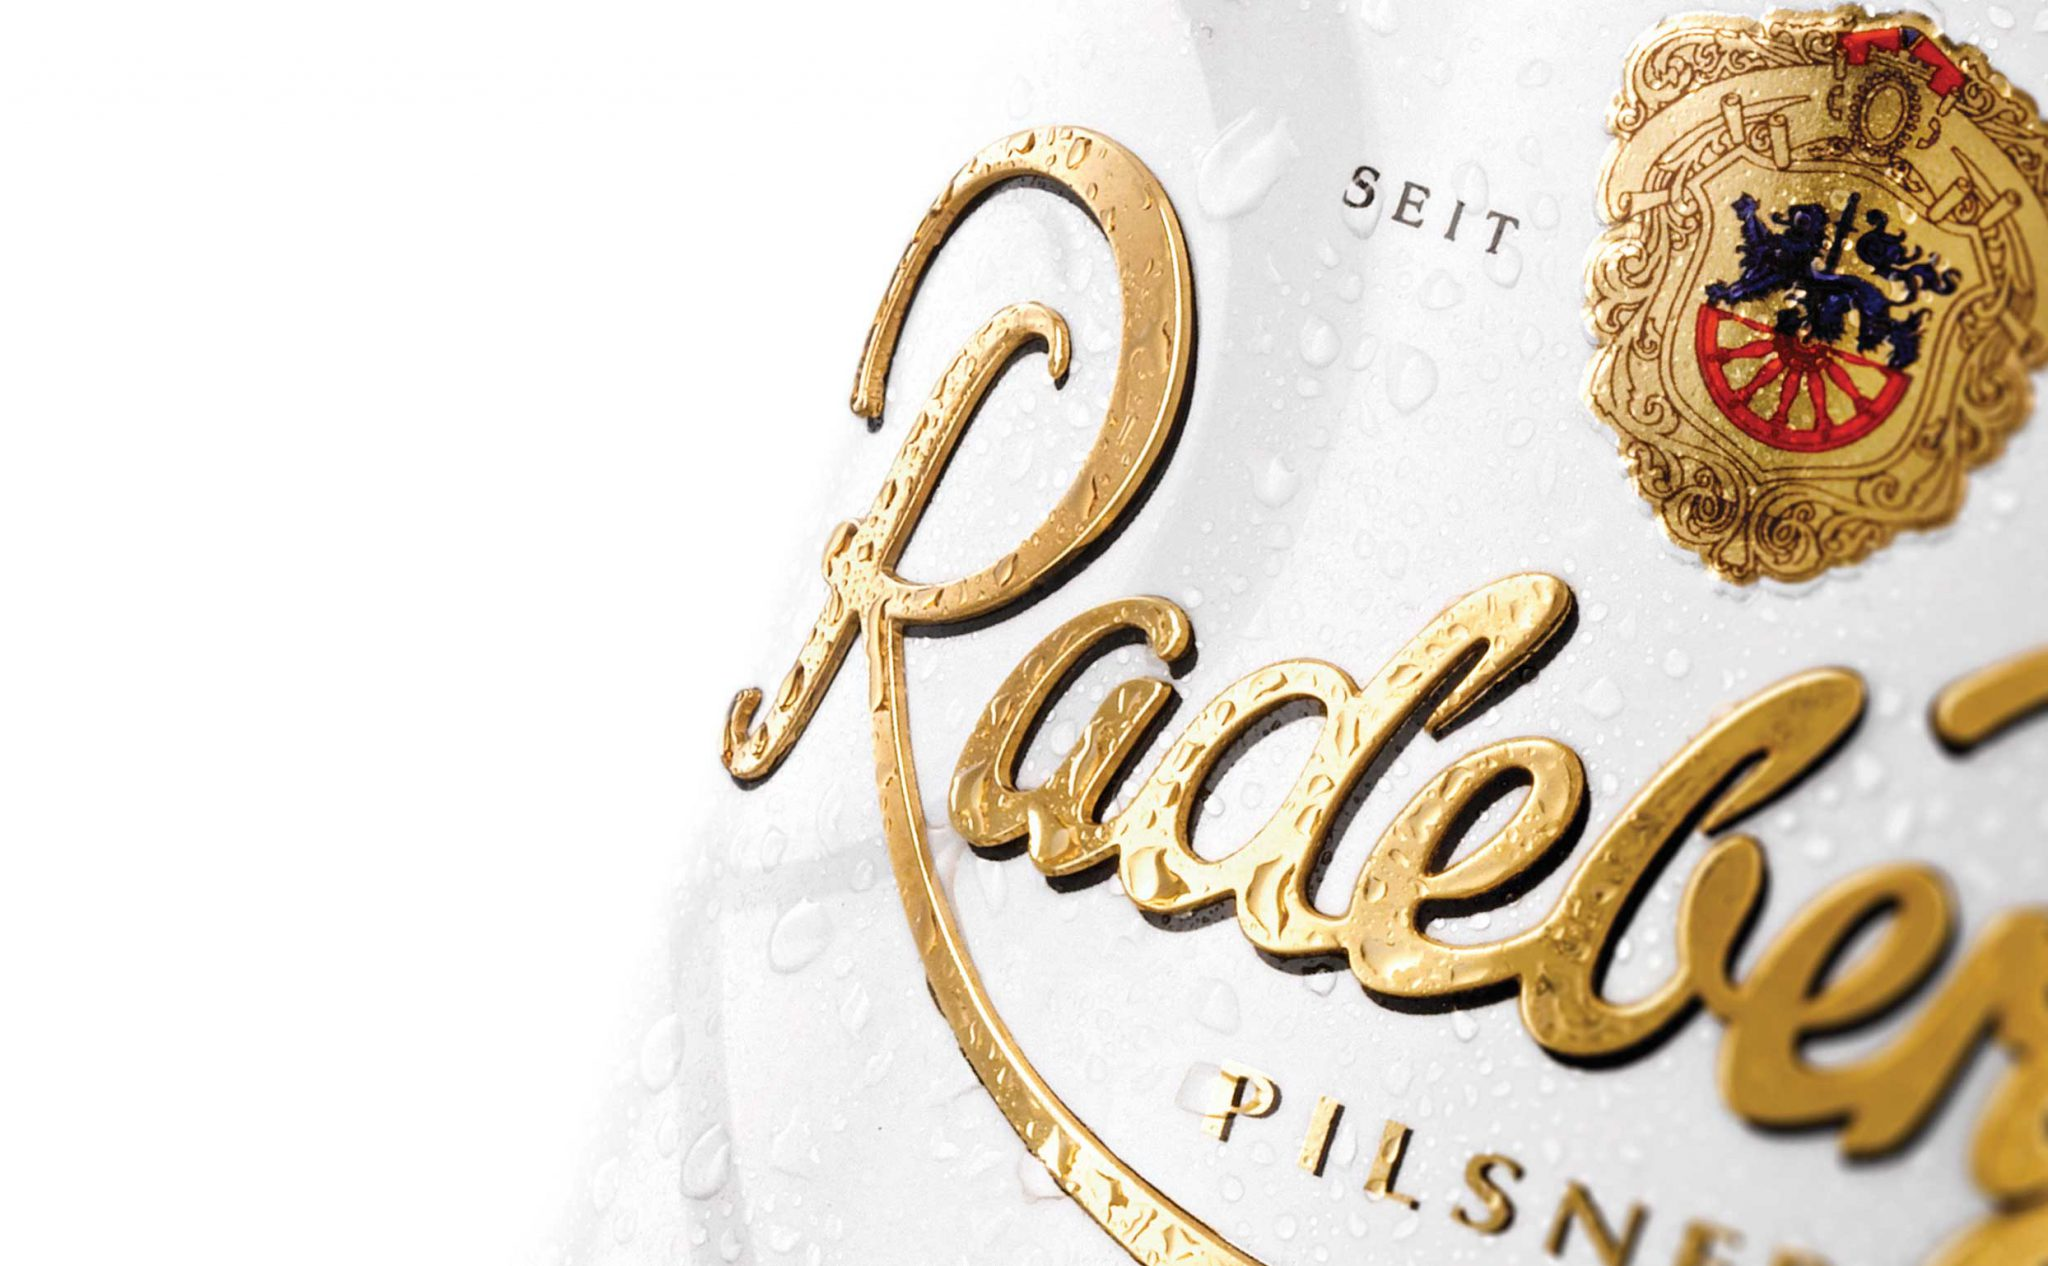 Radeberger Pilsner Label Closeup